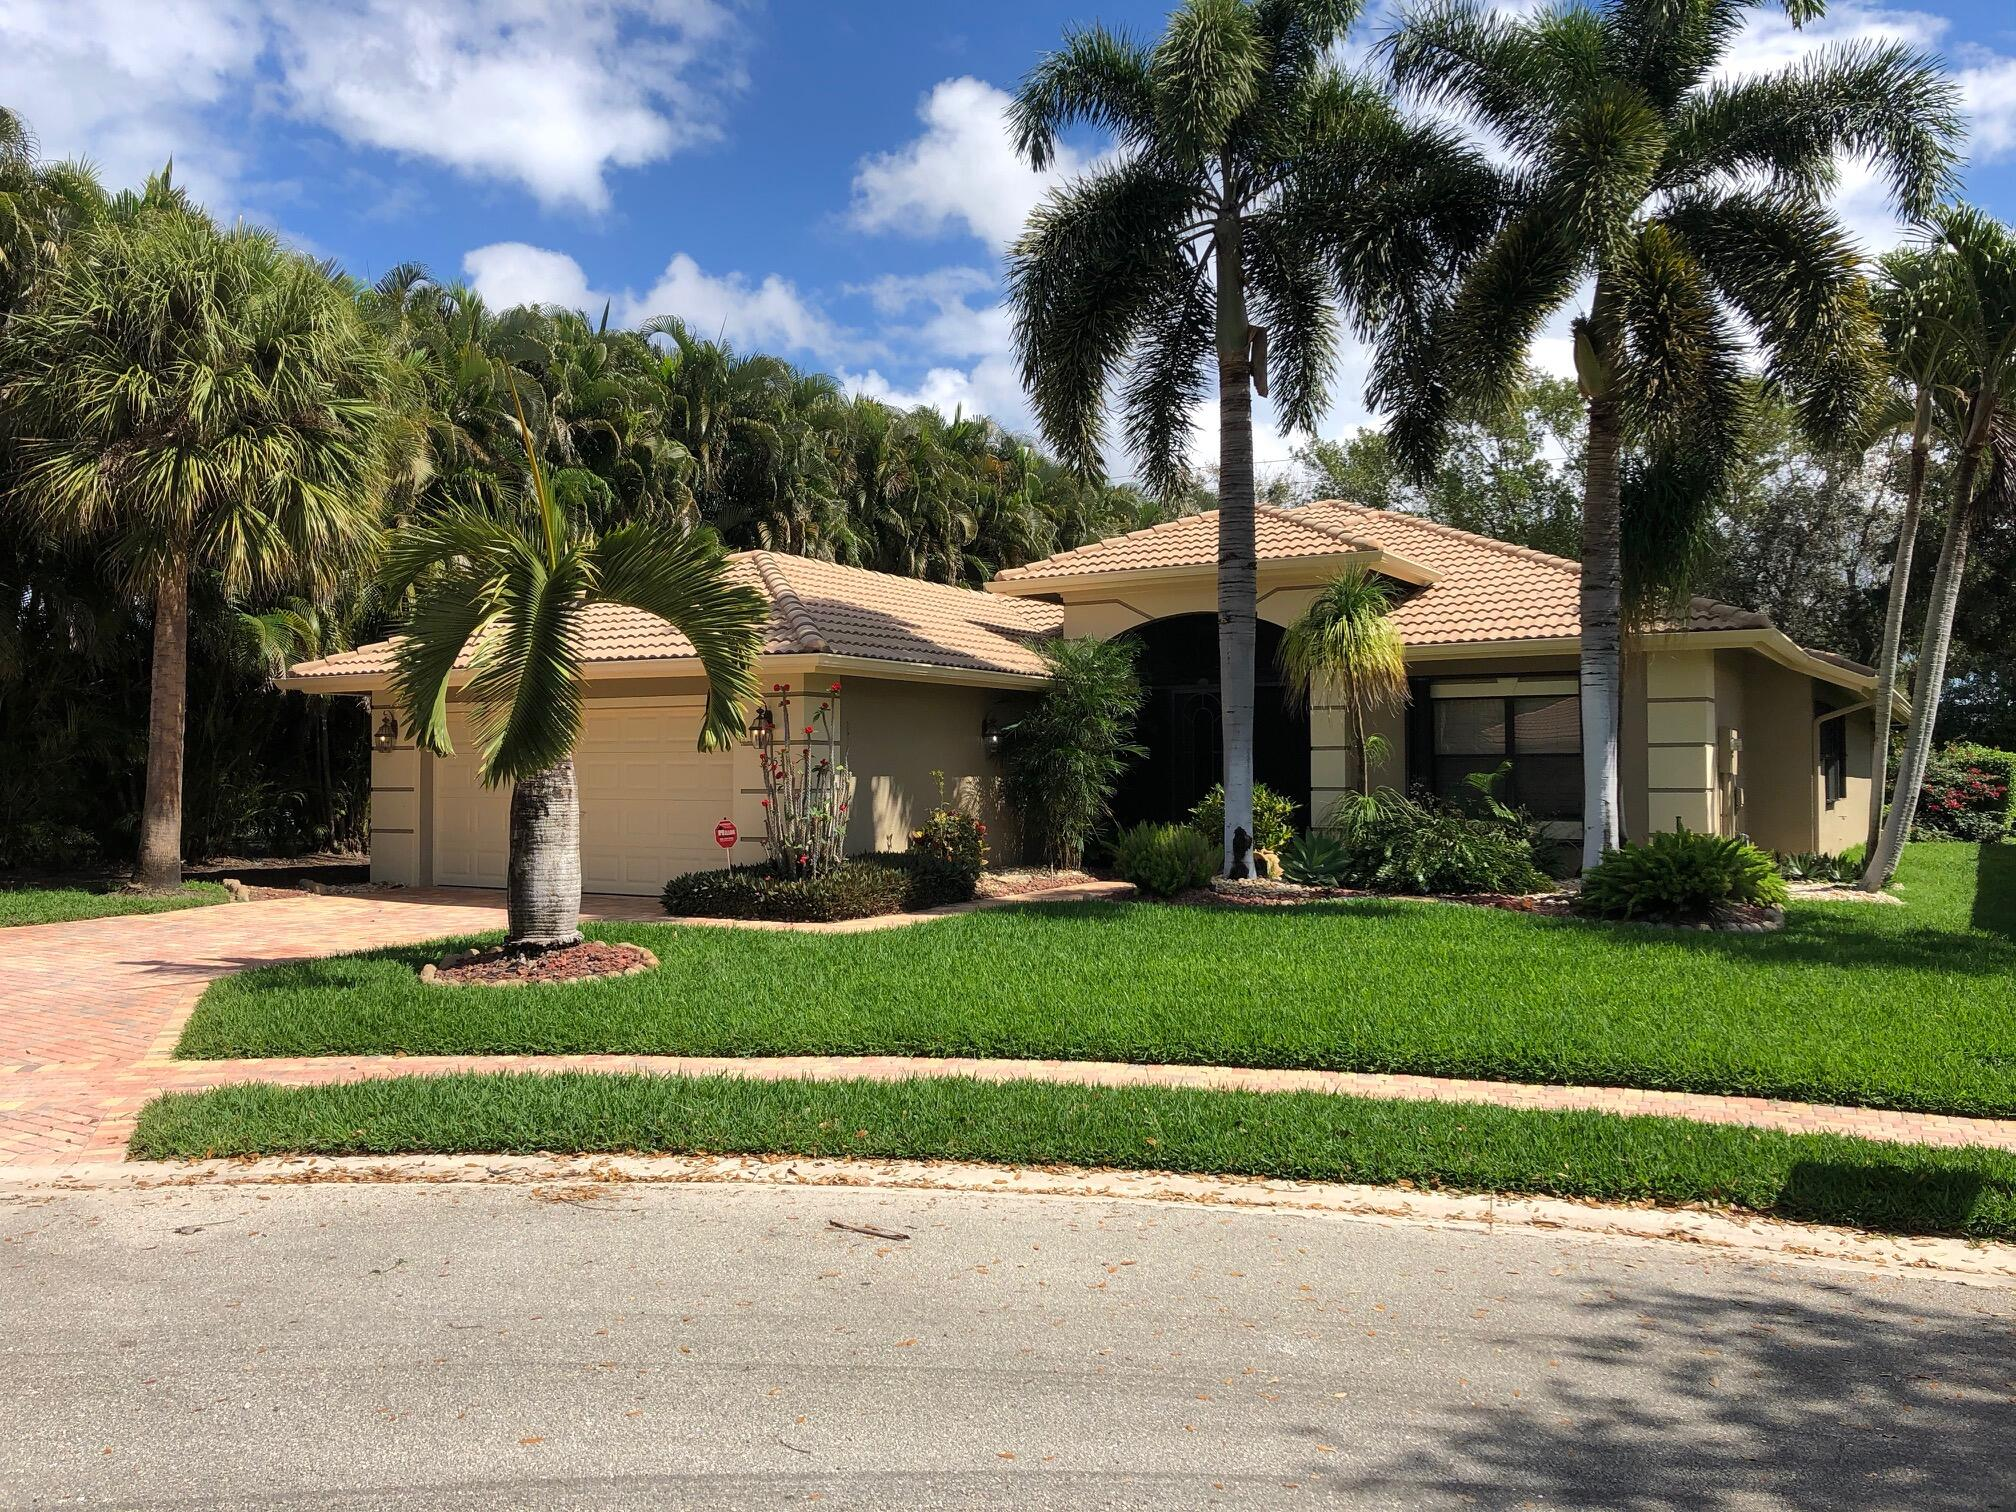 Home for sale in Tivloi Reserve Boynton Beach Florida